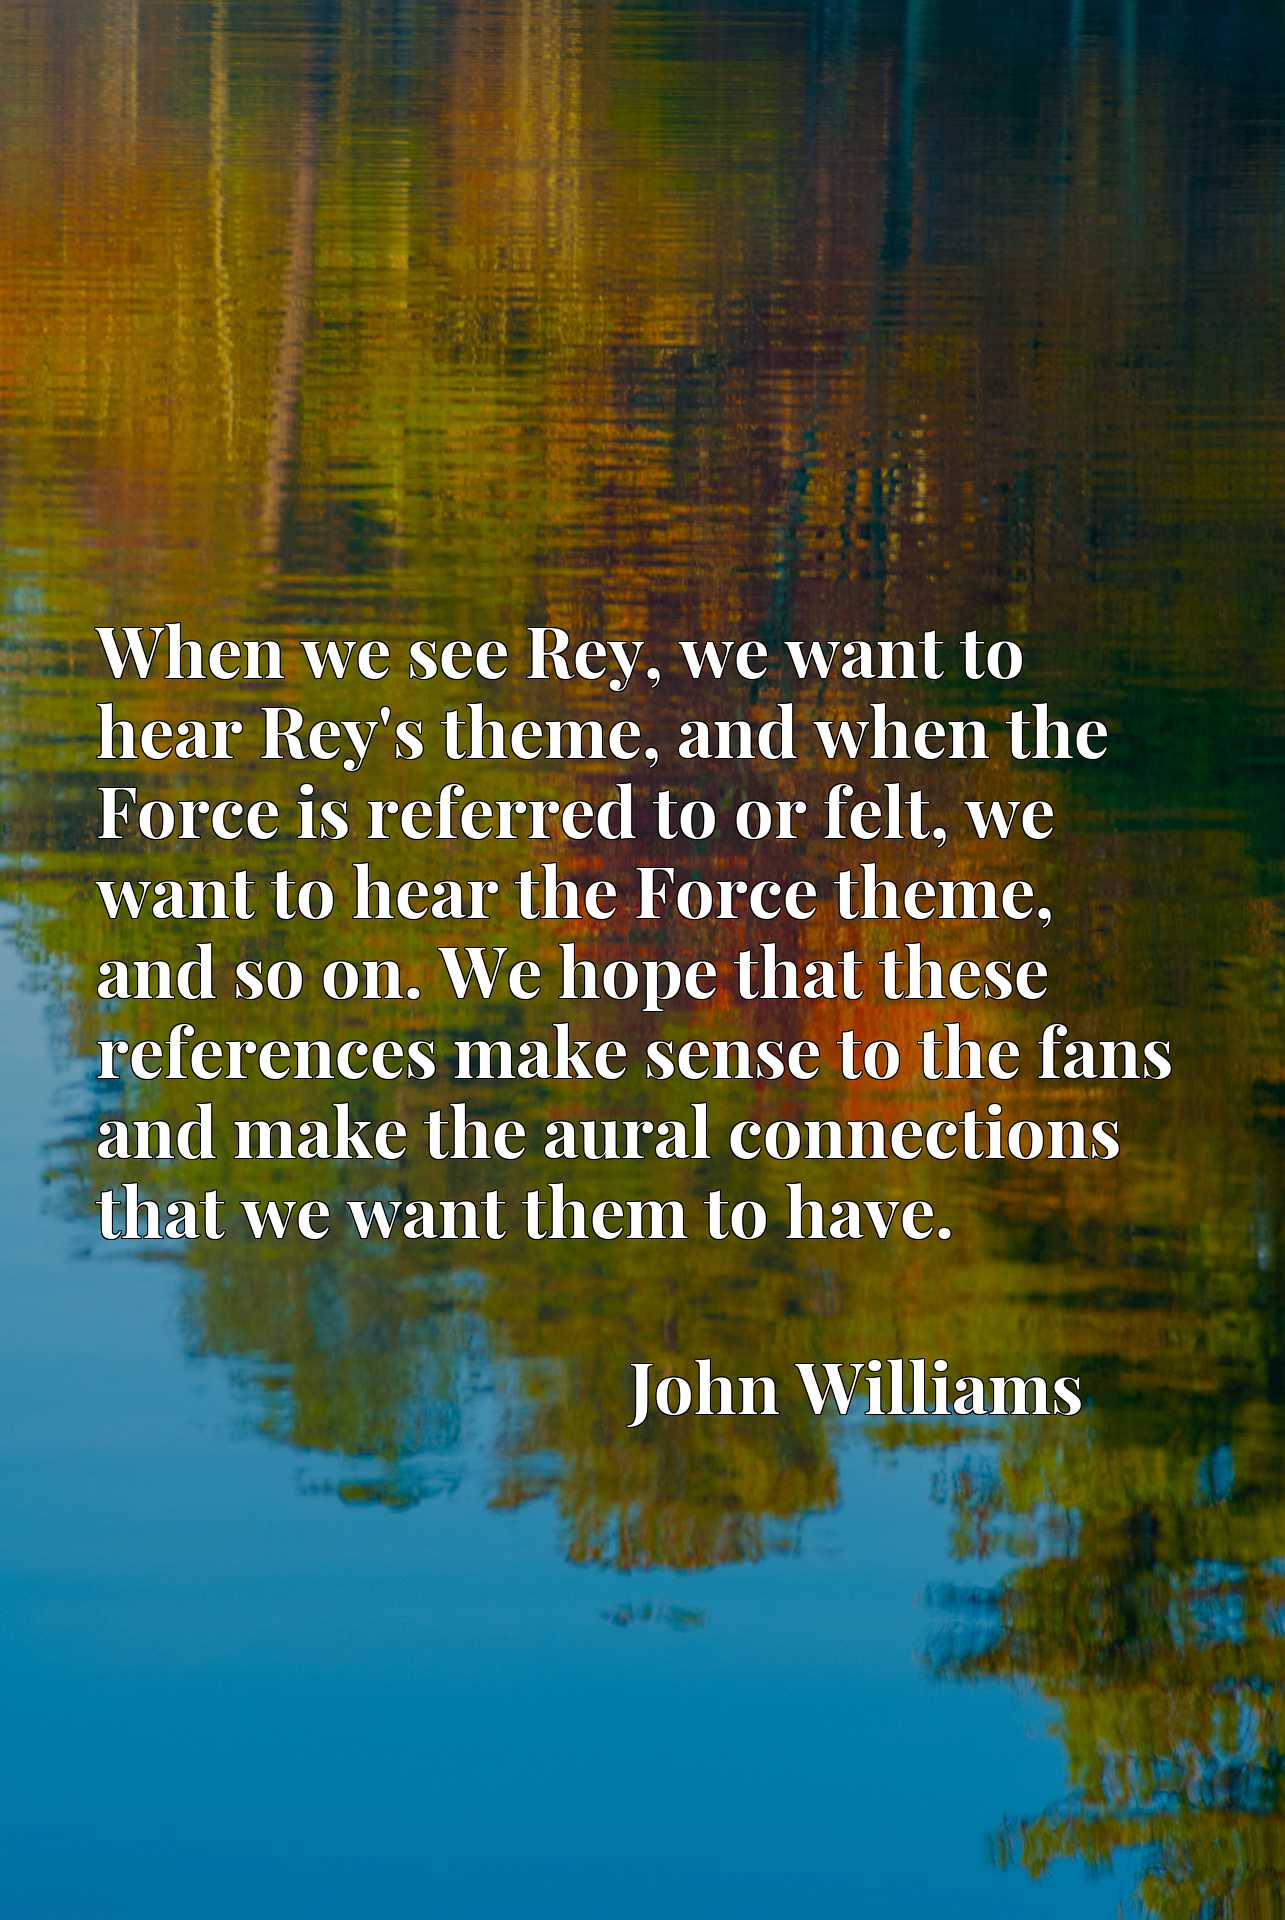 When we see Rey, we want to hear Rey's theme, and when the Force is referred to or felt, we want to hear the Force theme, and so on. We hope that these references make sense to the fans and make the aural connections that we want them to have.